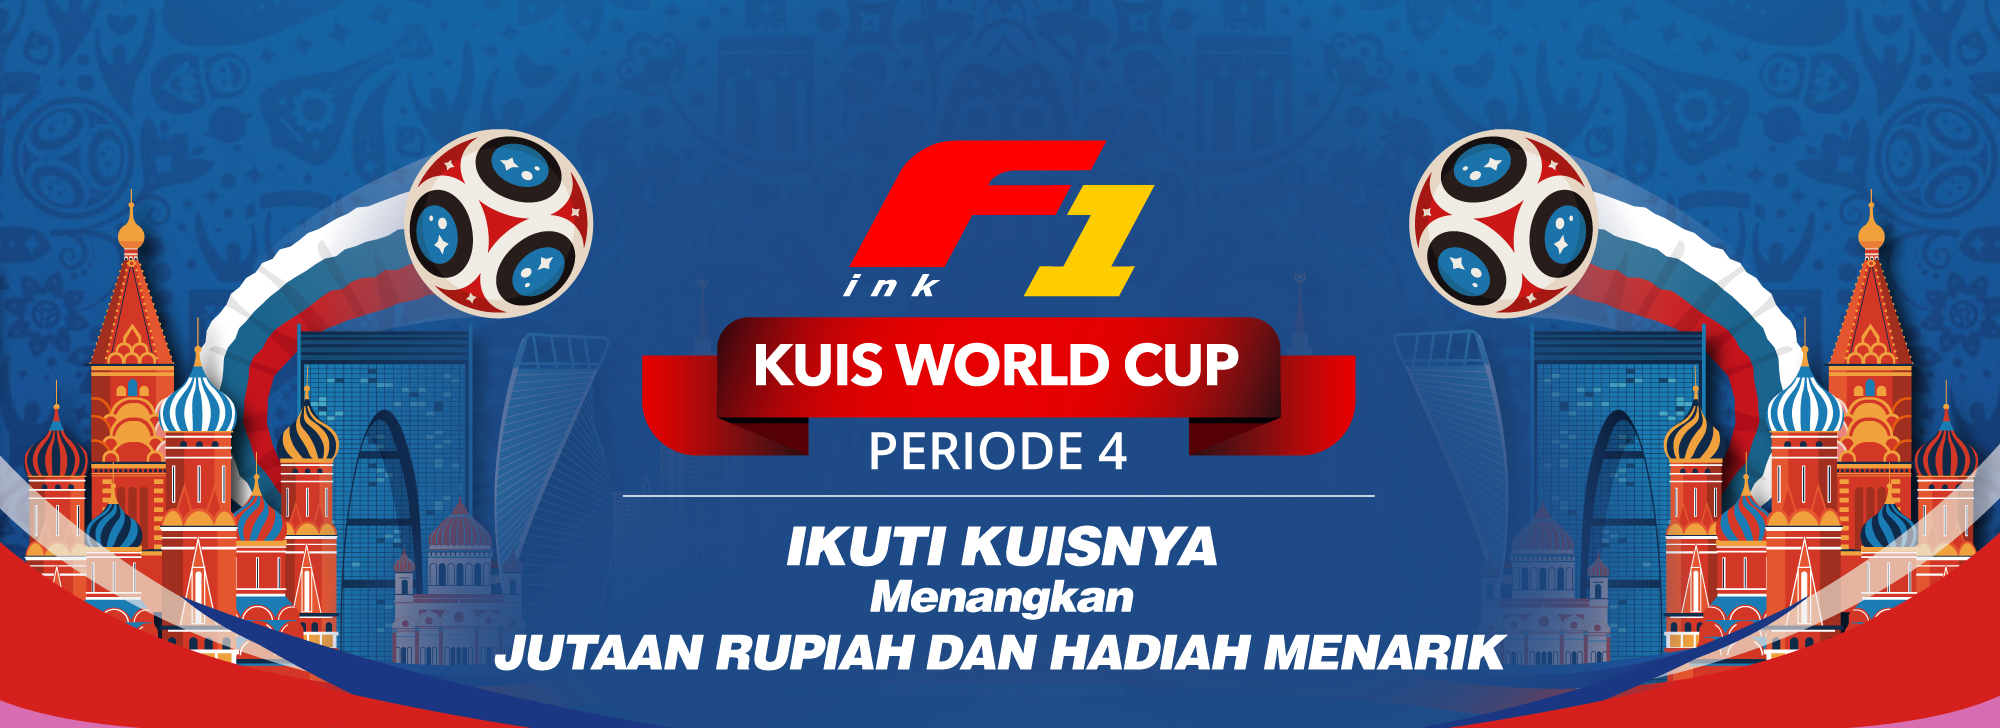 BANNER-WEB-world-cup4